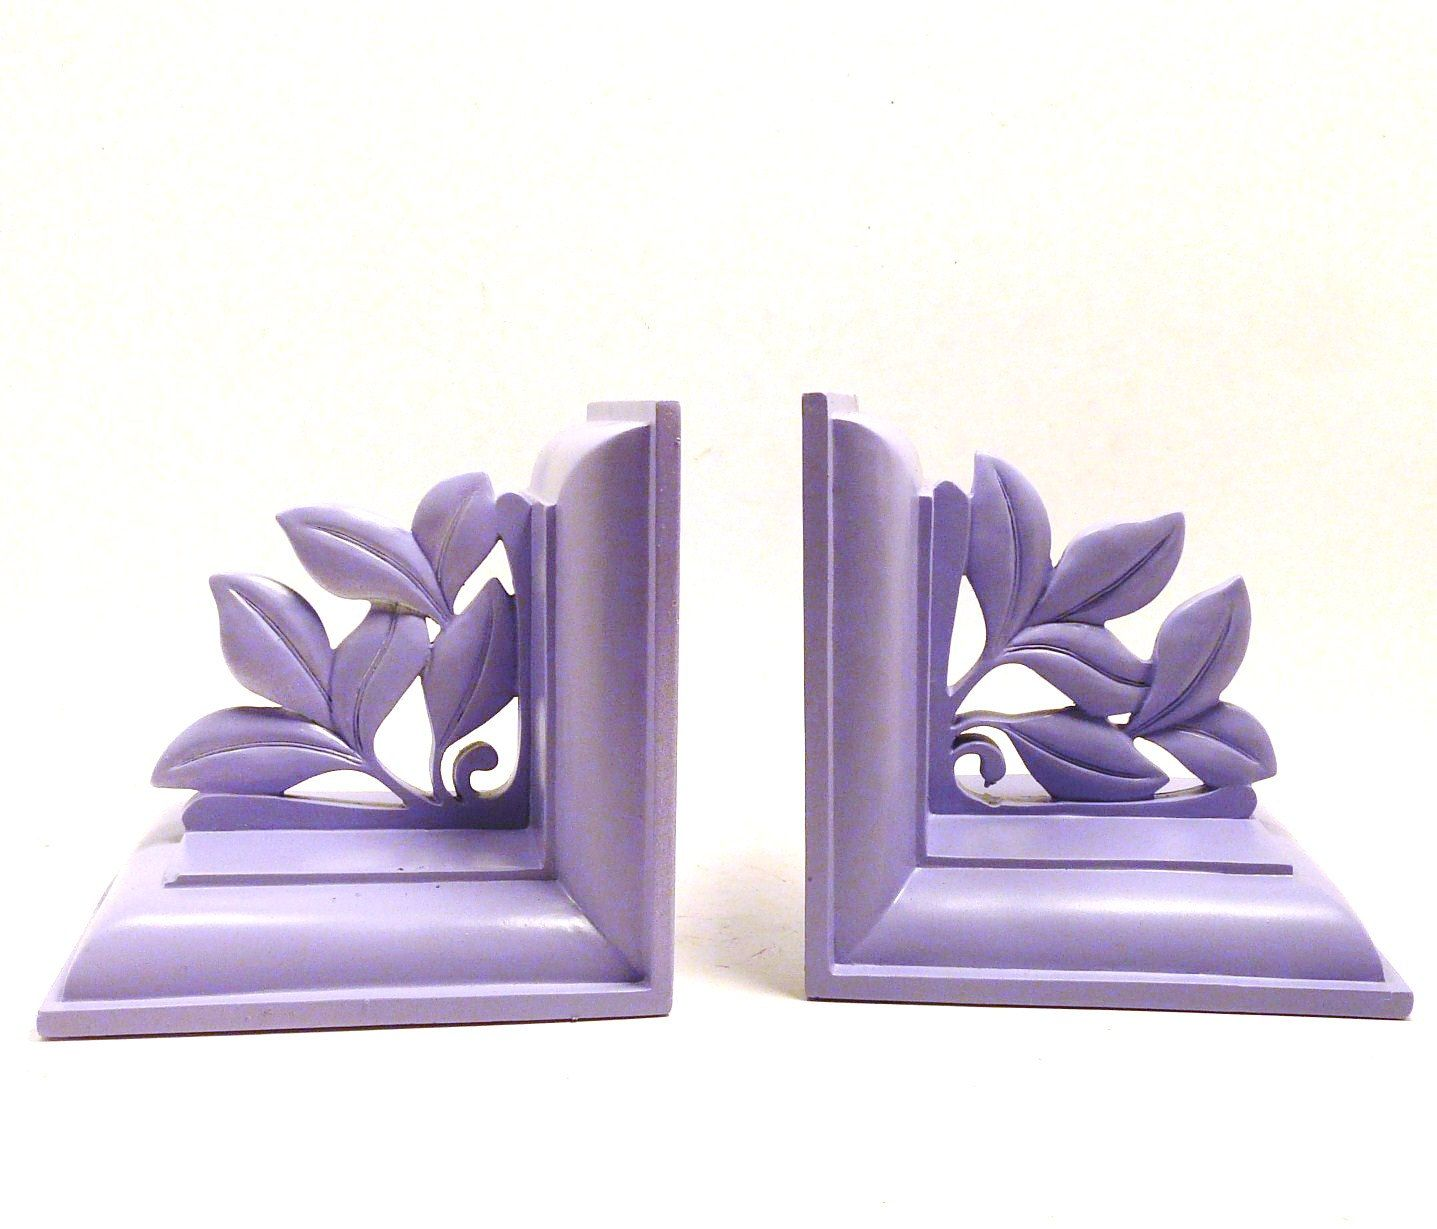 Bookends, Lilac, Ornate, Romantic, Victorian, Religious, Pslam, Home Office